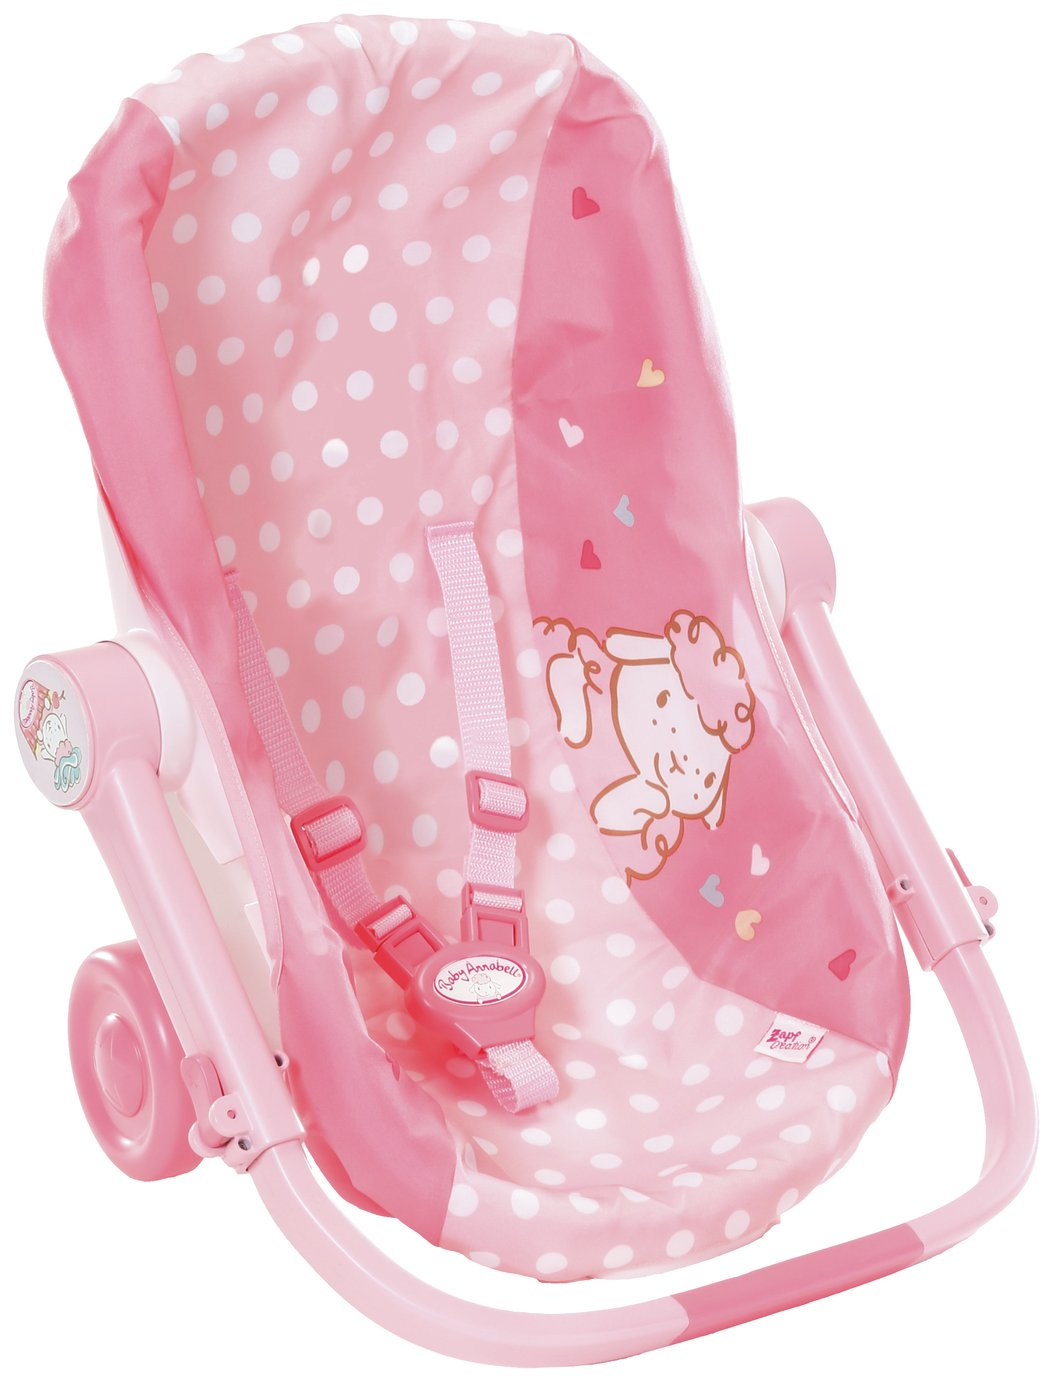 Image of Baby Annabell Doll Travel Seat